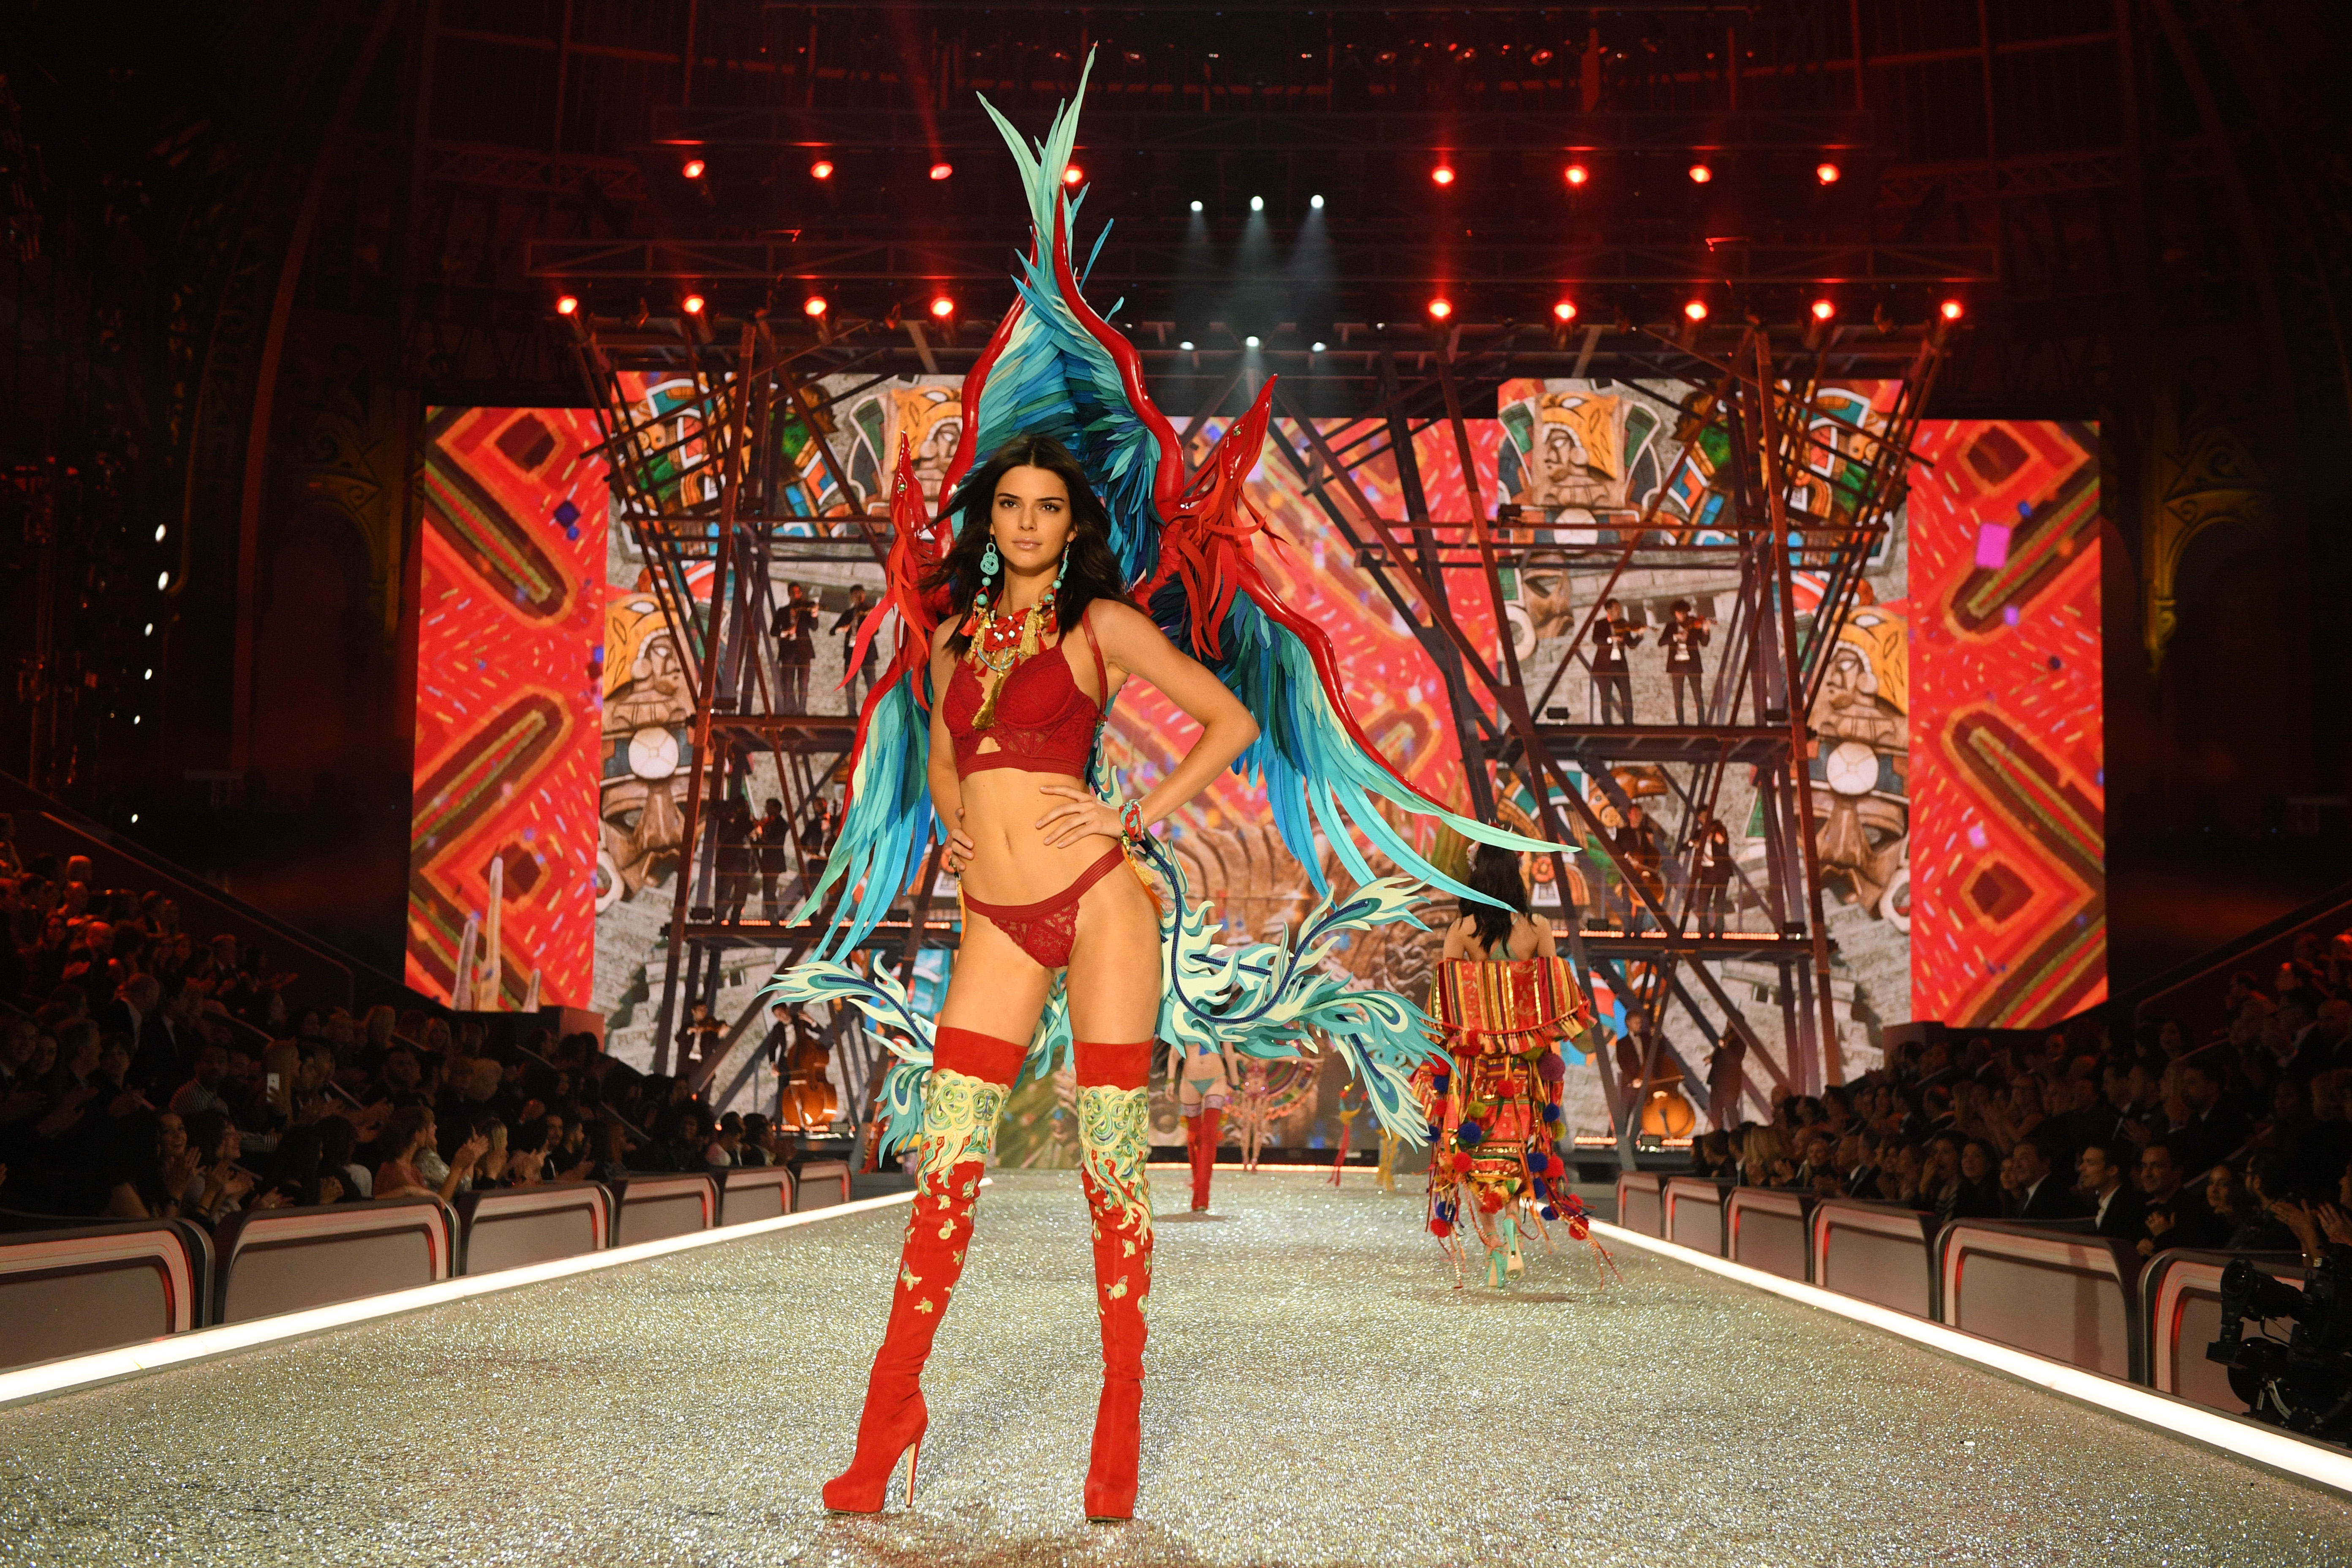 PARIS, FRANCE - NOVEMBER 30: Kendall Jenner walks the runway during the 2016 Victoria's Secret Fashion Show on November 30, 2016 in Paris, France. (Photo by Dimitrios Kambouris/Getty Images for Victoria's Secret)